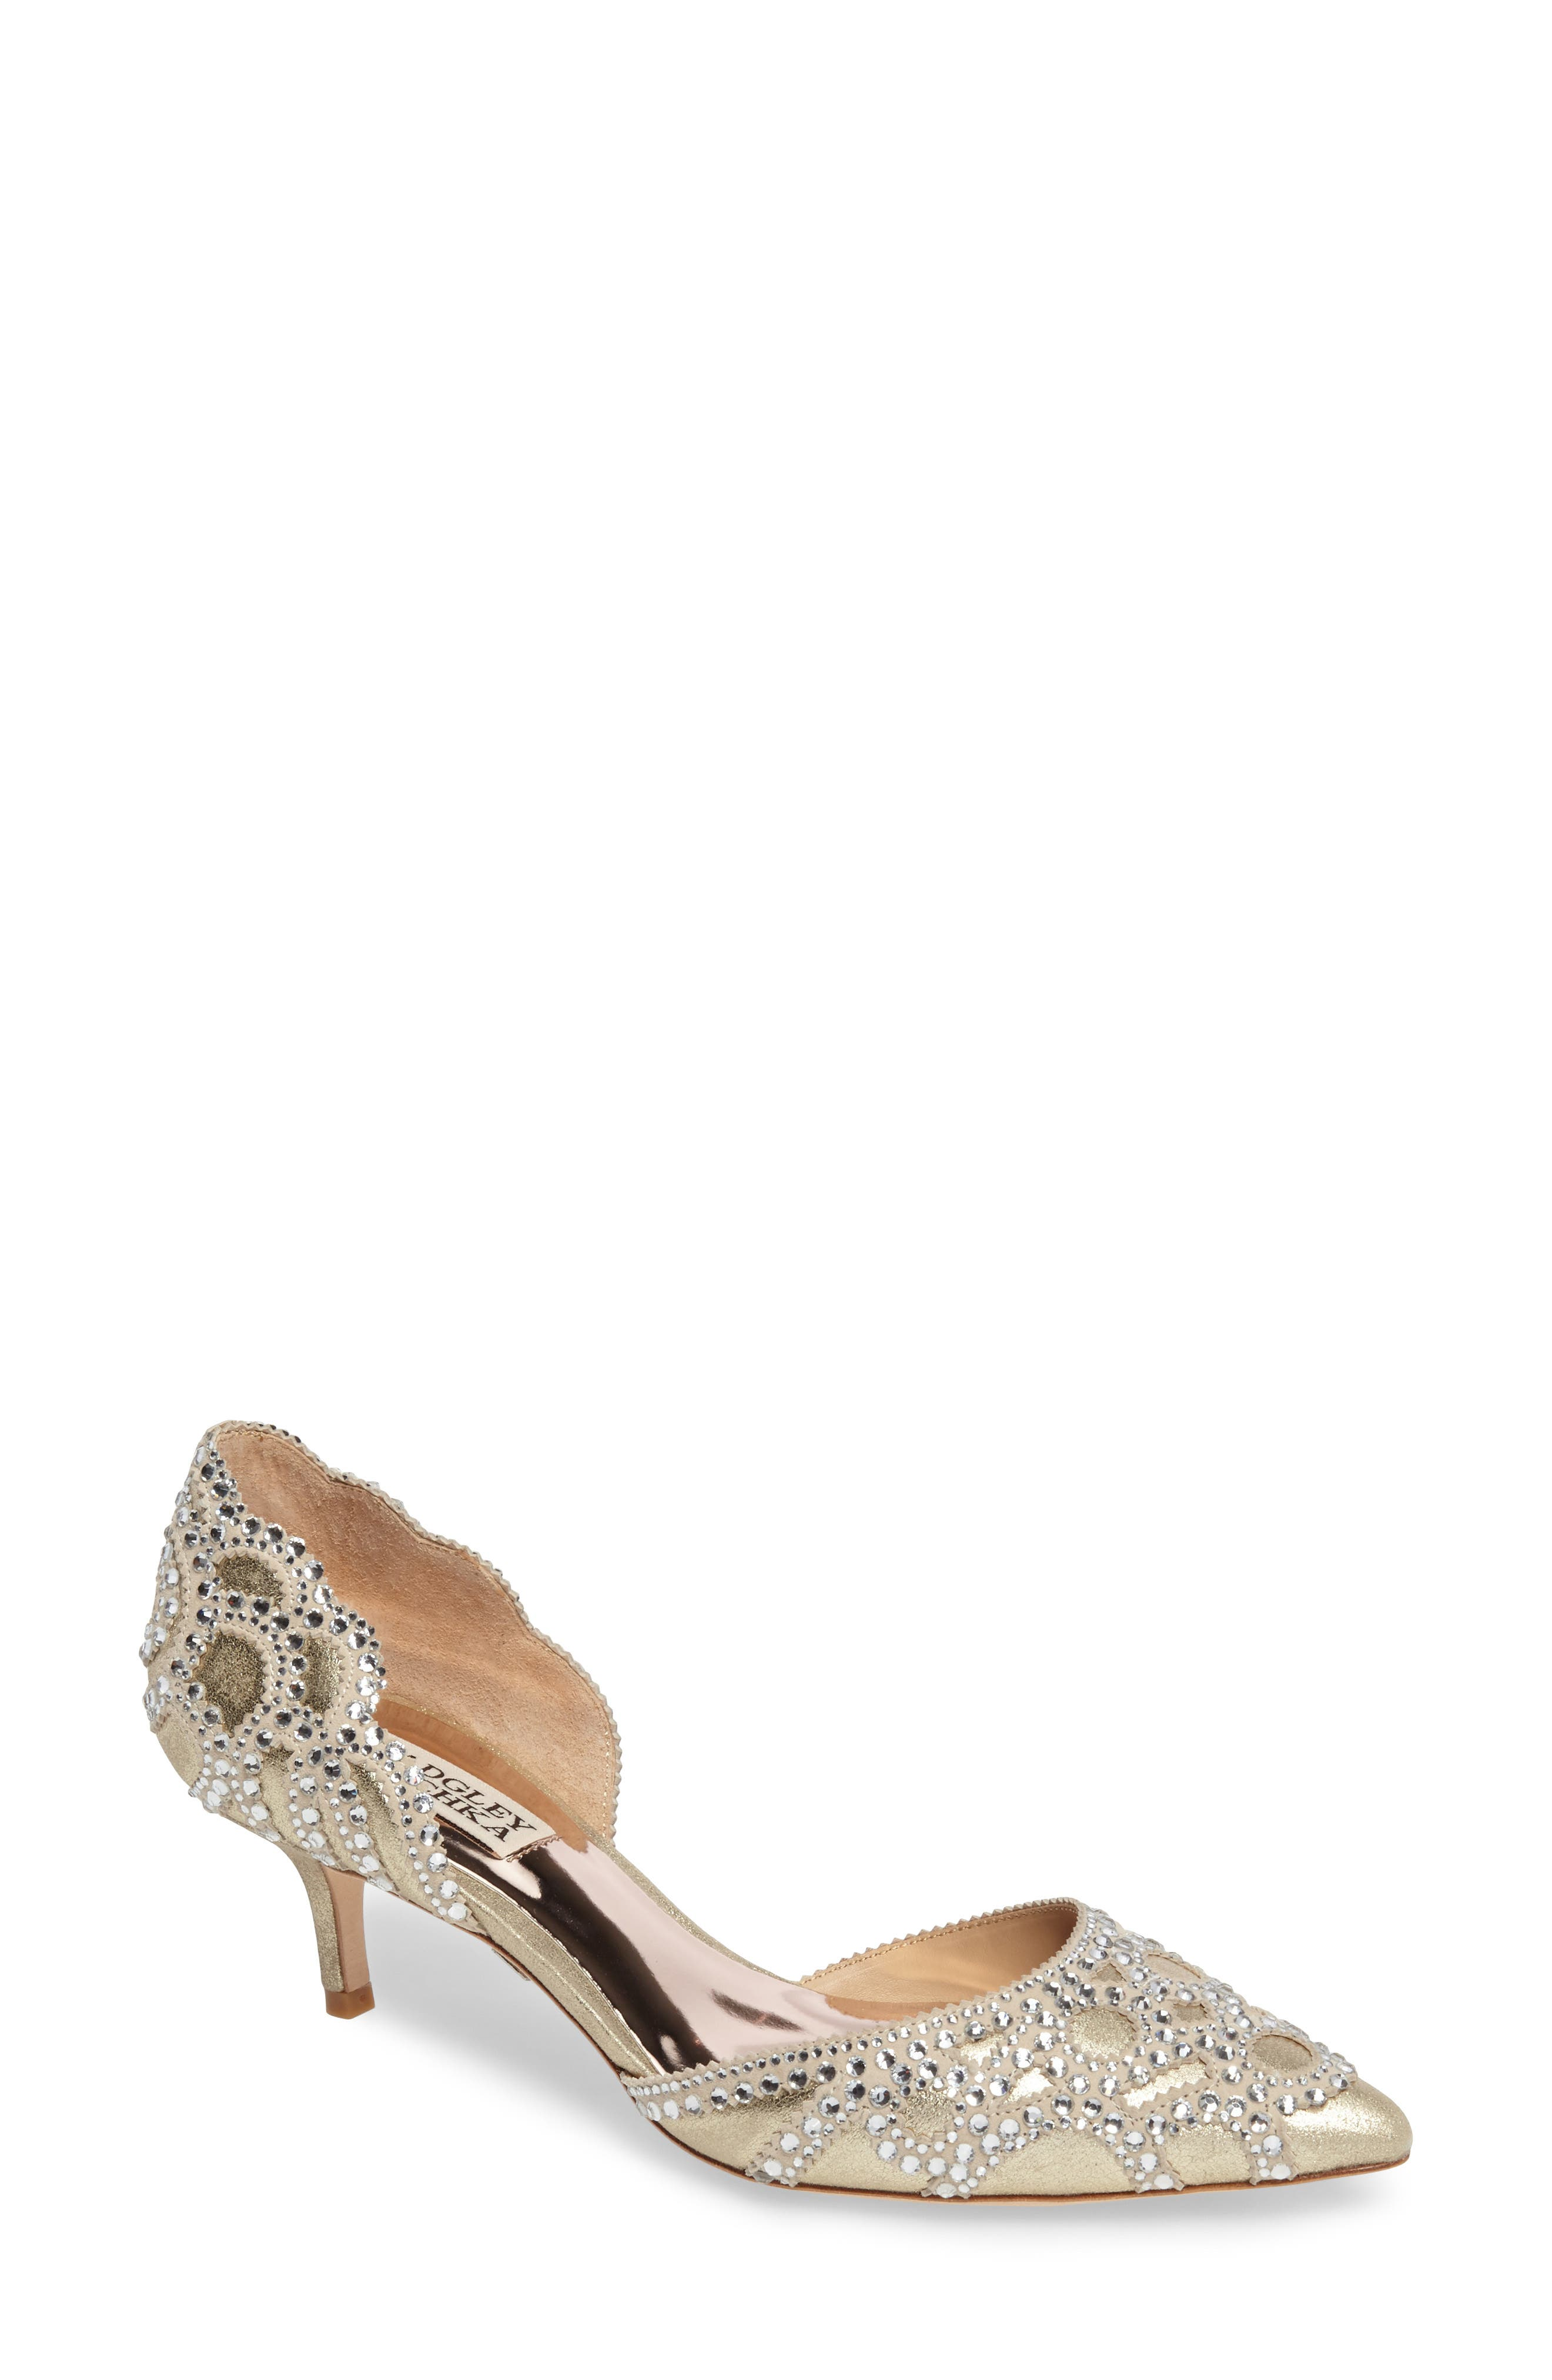 Badgley Mischka 'Ginny' Embellished d'Orsay Pump, Main, color, PLATINO METALLIC SUEDE